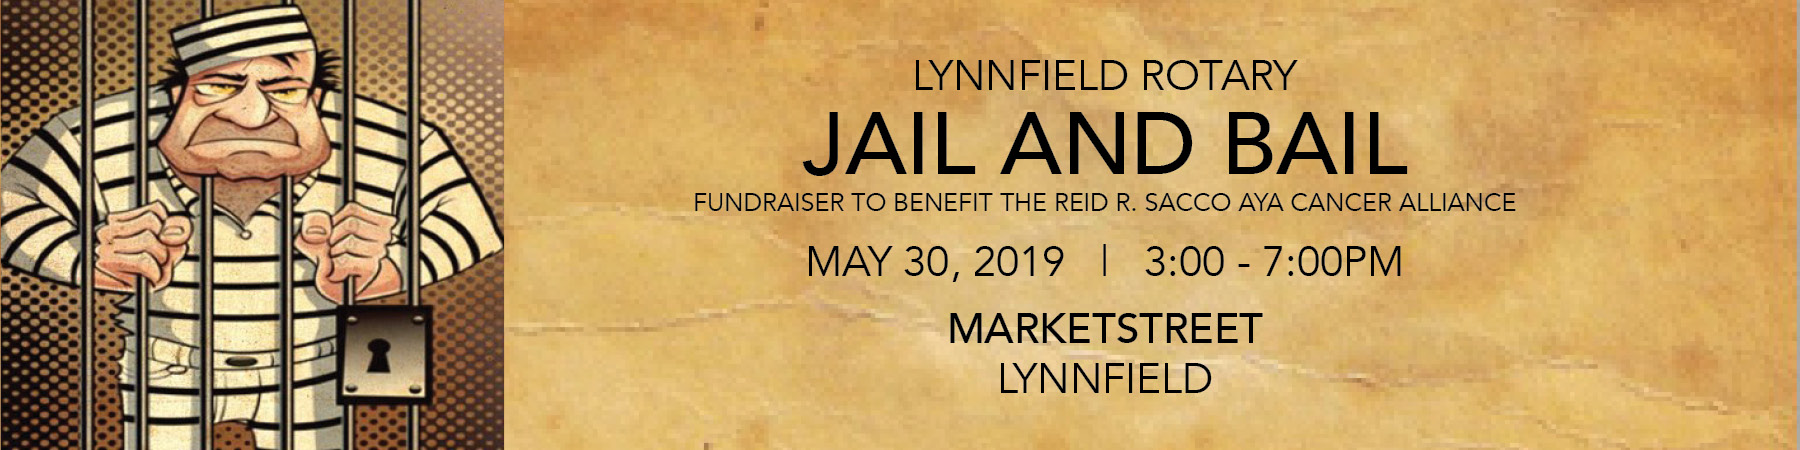 jail and bail - 2019.jpg